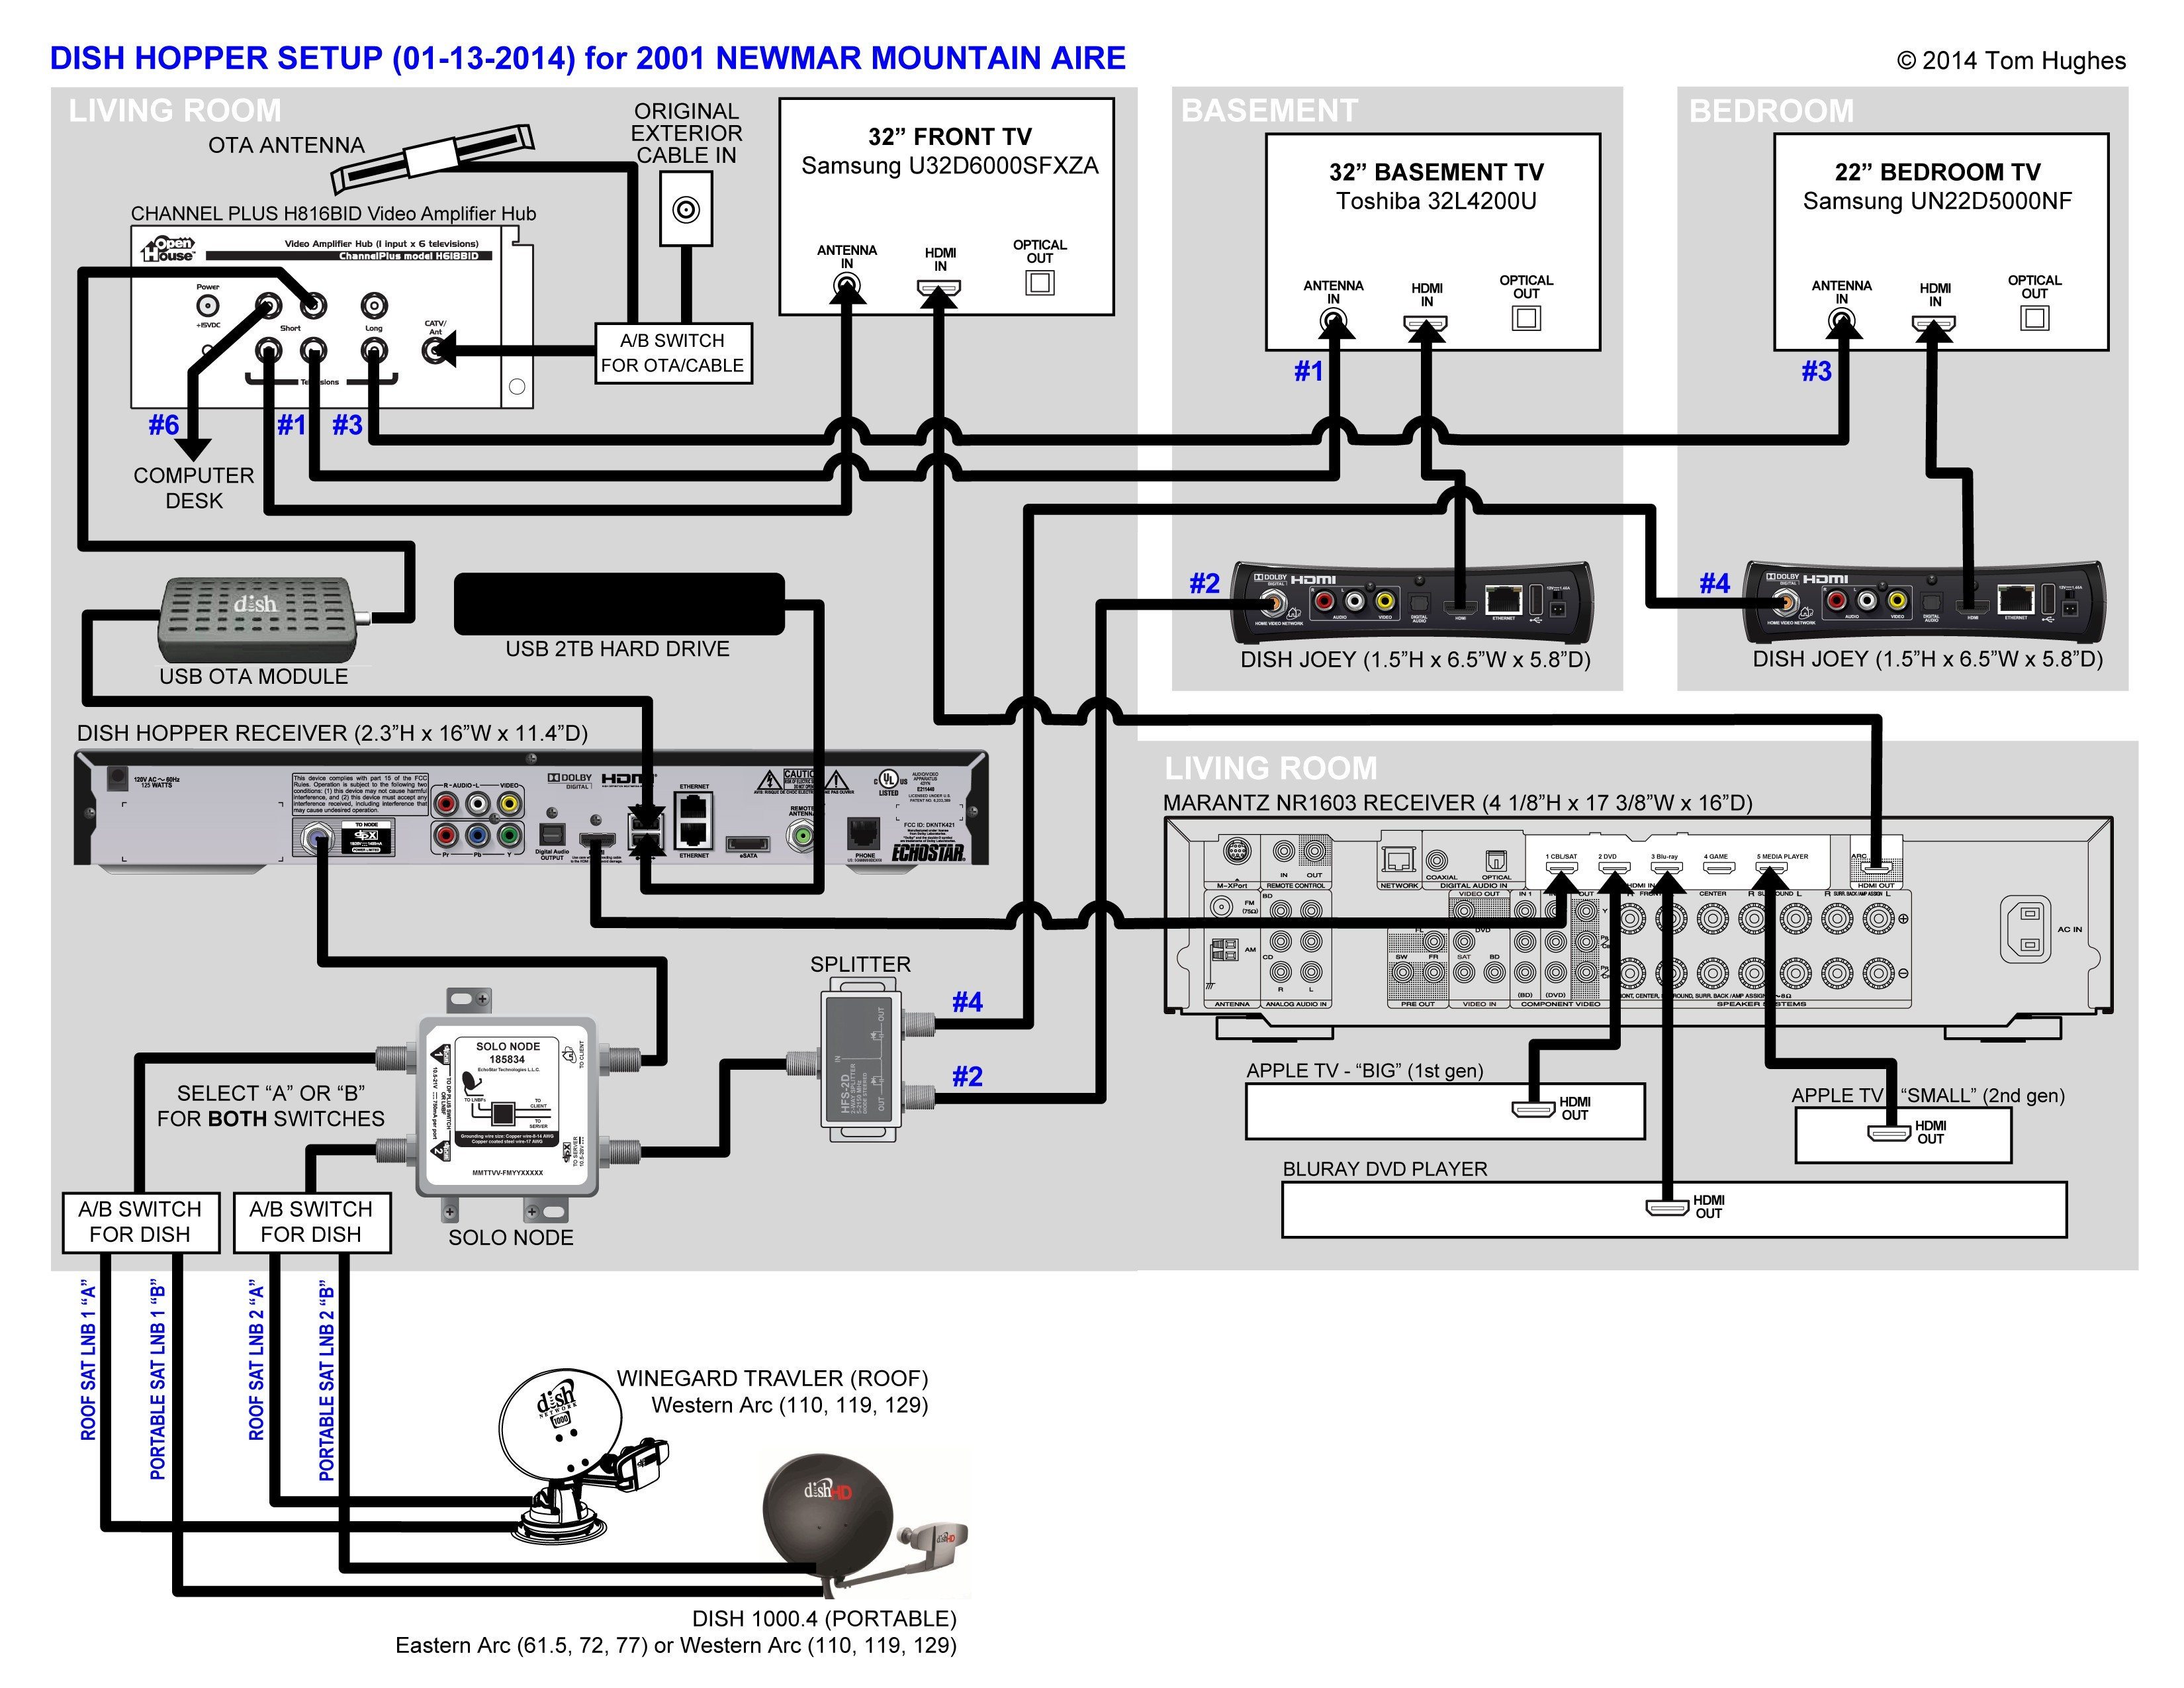 dish 722 receiver wiring diagram detailed schematics diagram dish satellite wiring dish network 722 receiver dish wally receiver wiring diagram dish 722 receiver wiring diagram